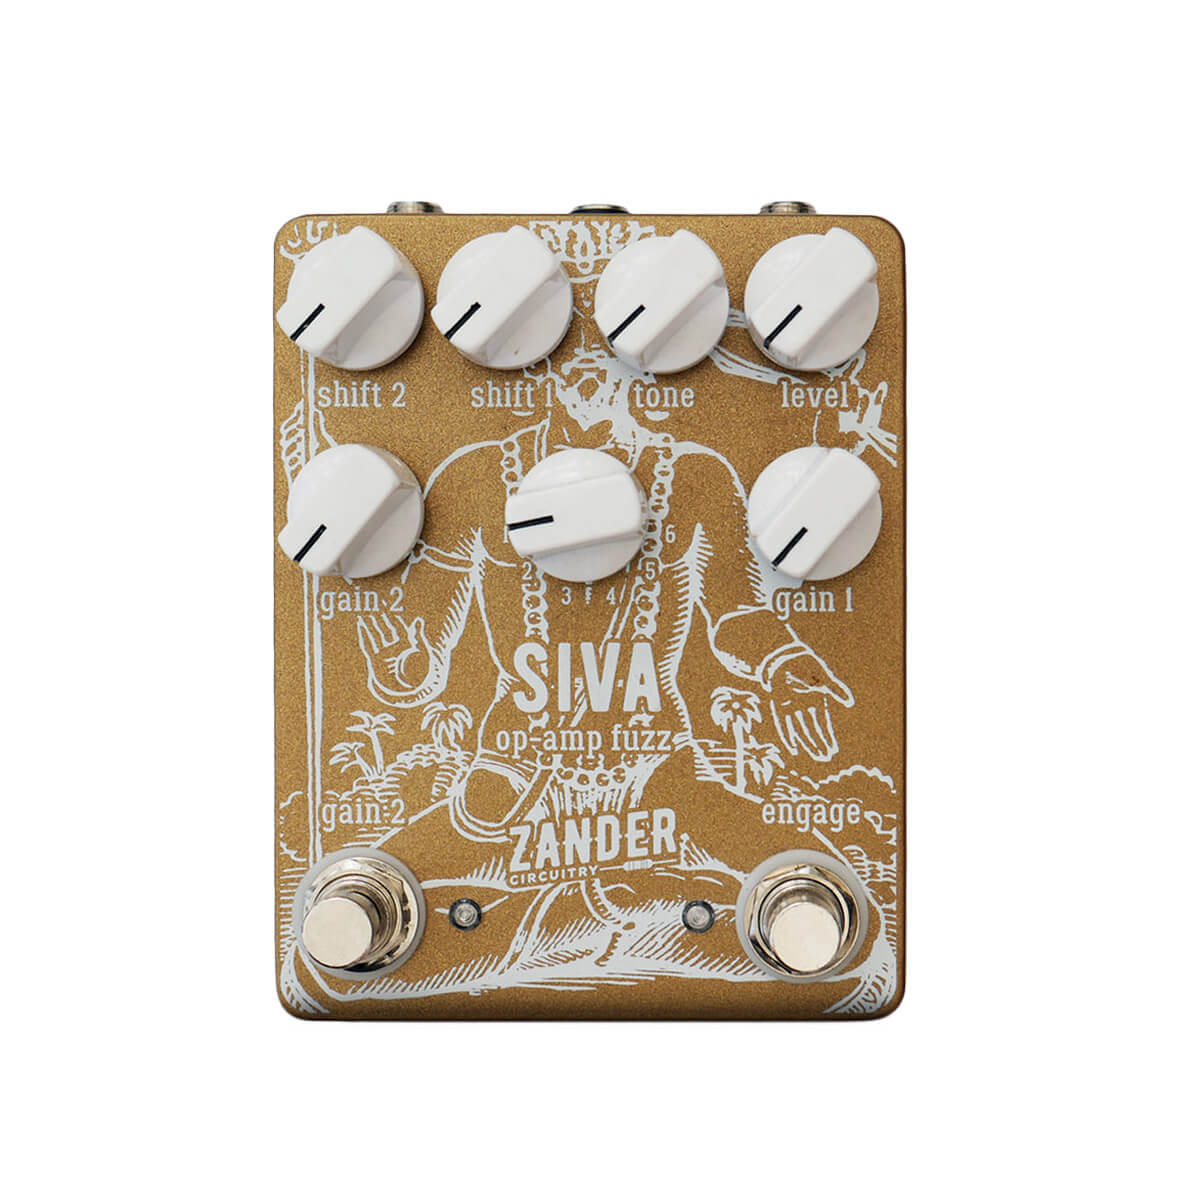 ZANDER CIRCUITRY Siva front - Boost Guitar Pedals